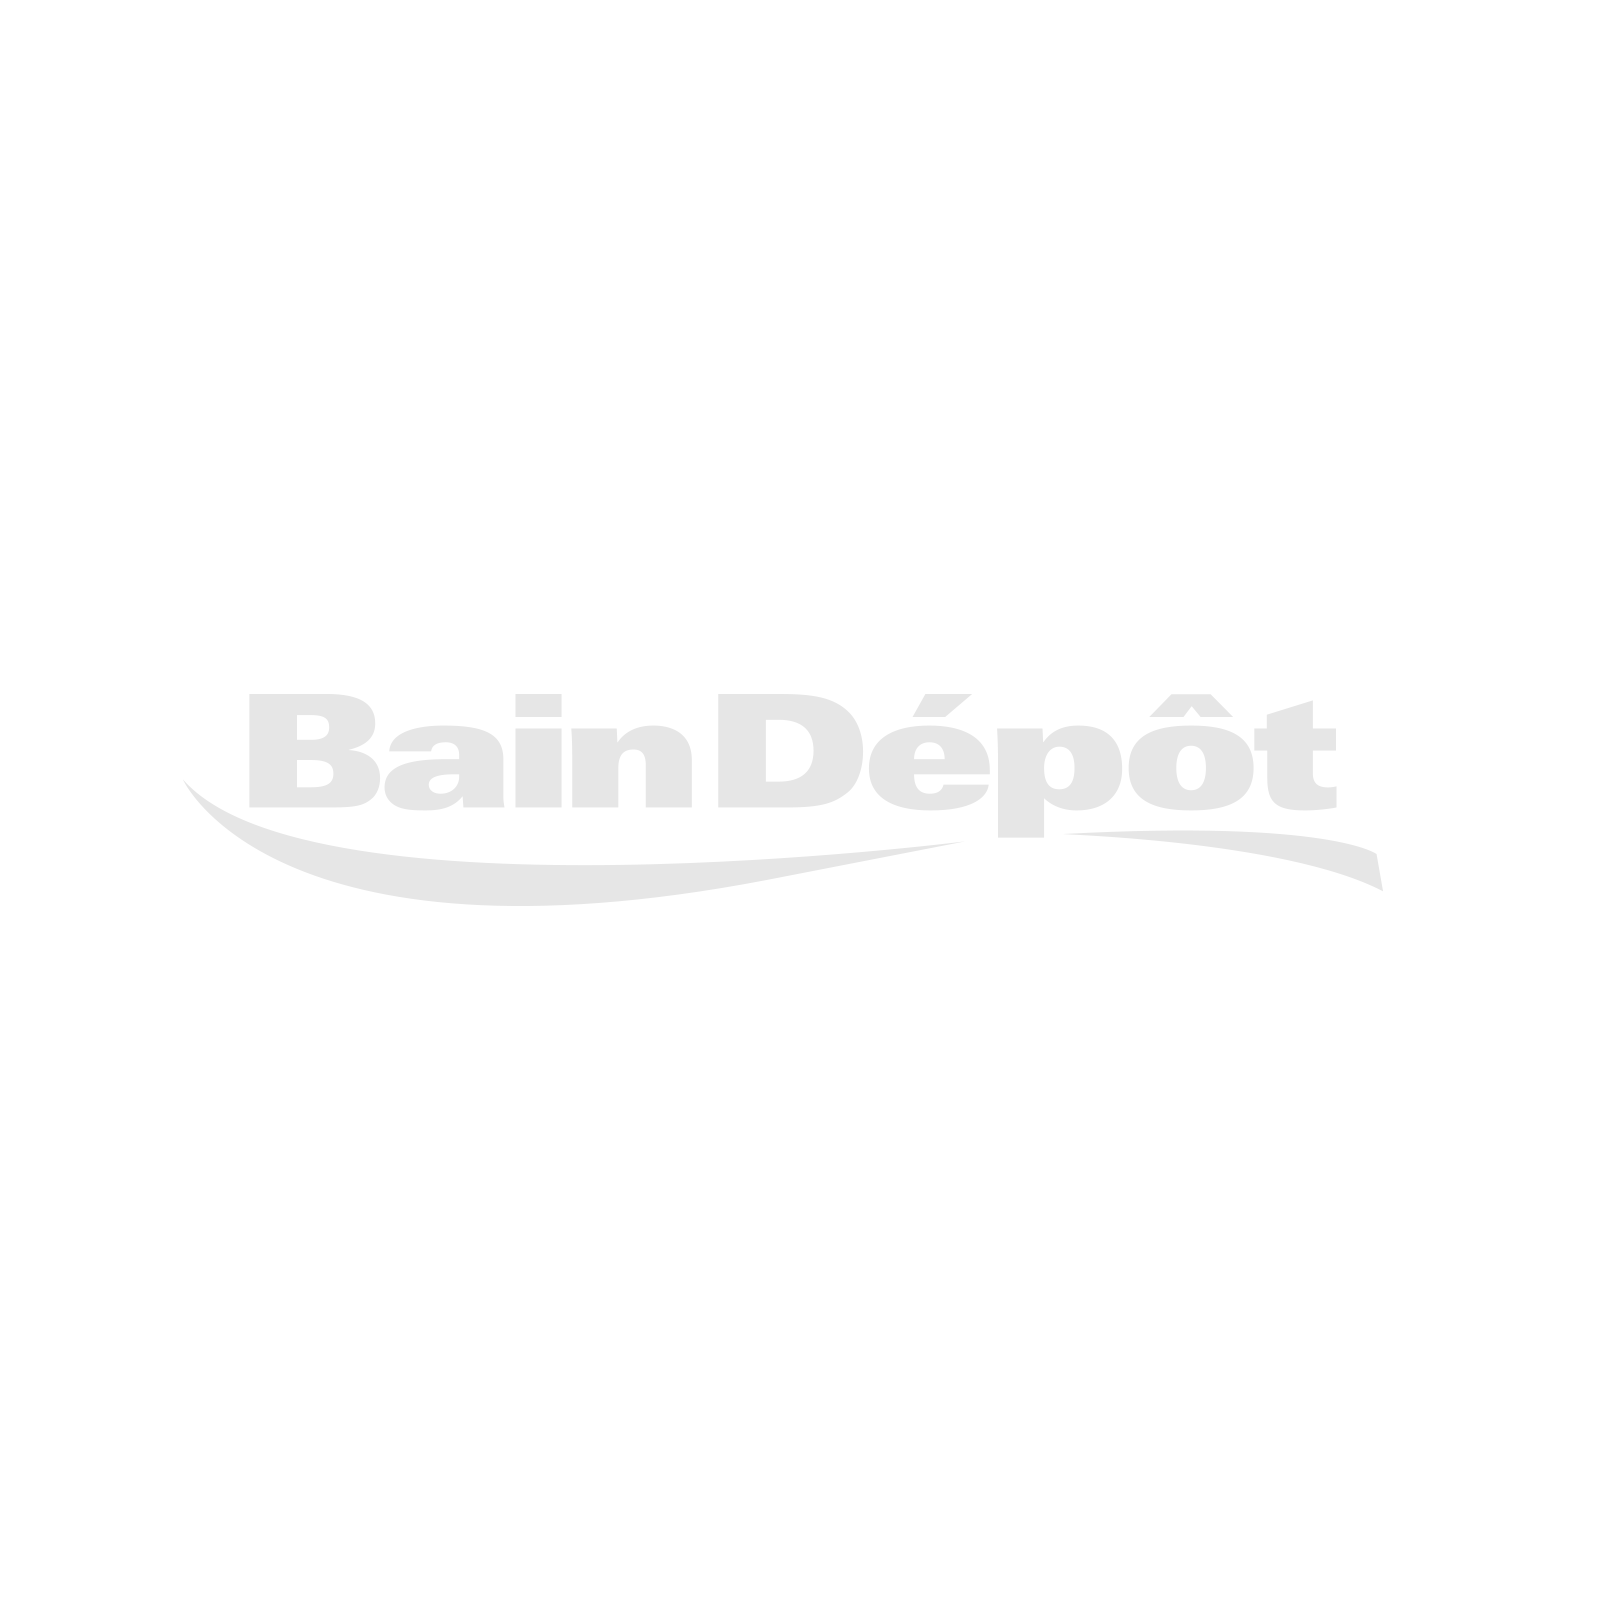 "Double undermount kitchen sink 32"" x 20"""